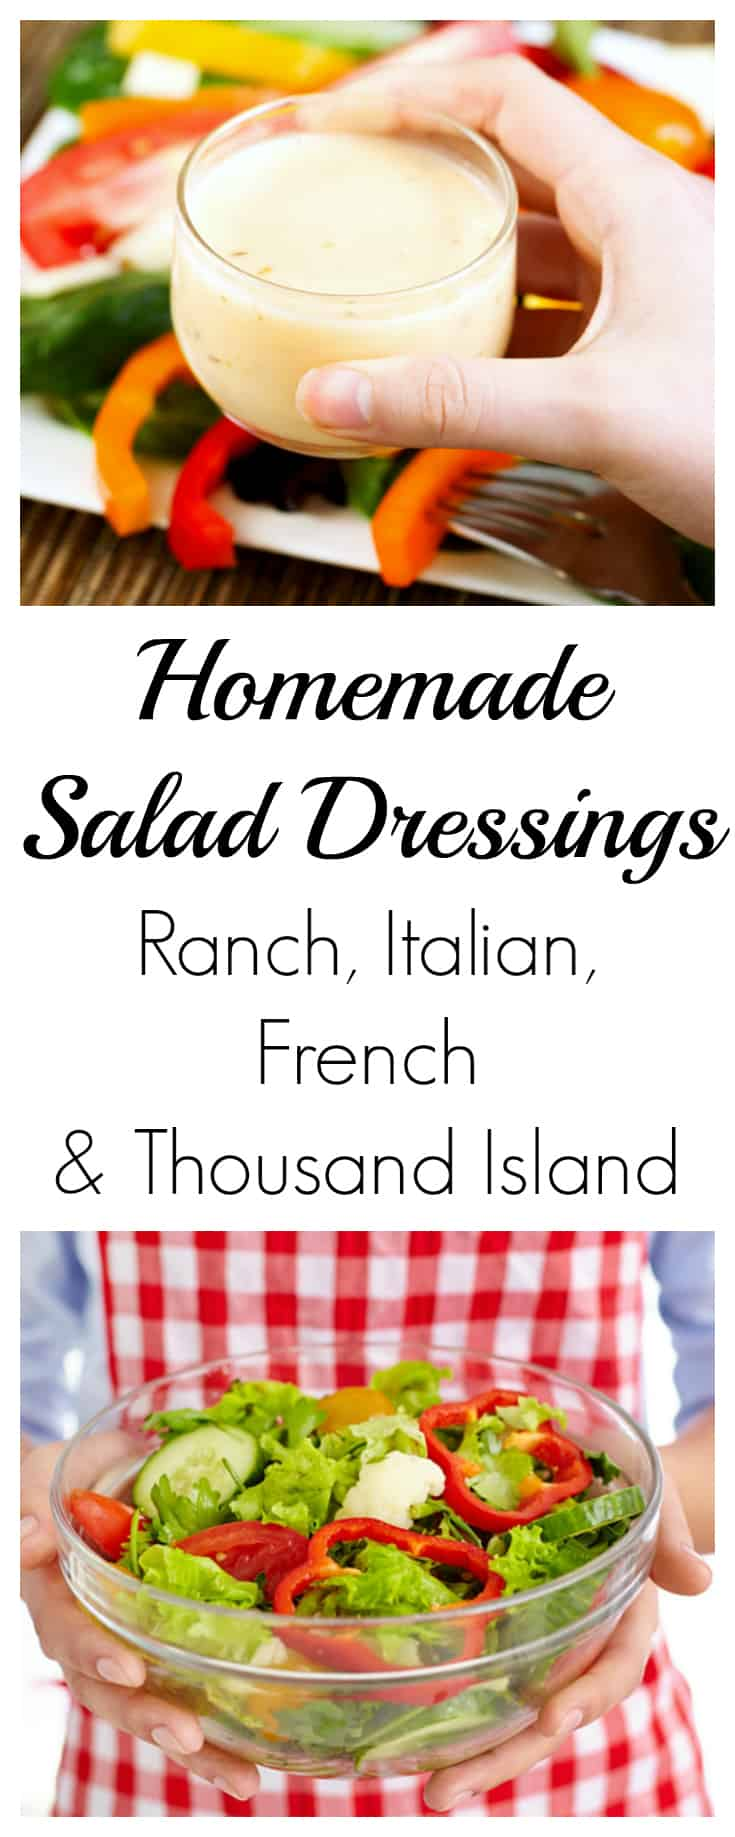 Four Homemade Salad Dressing Recipes | #saladrecipes #makeyourown